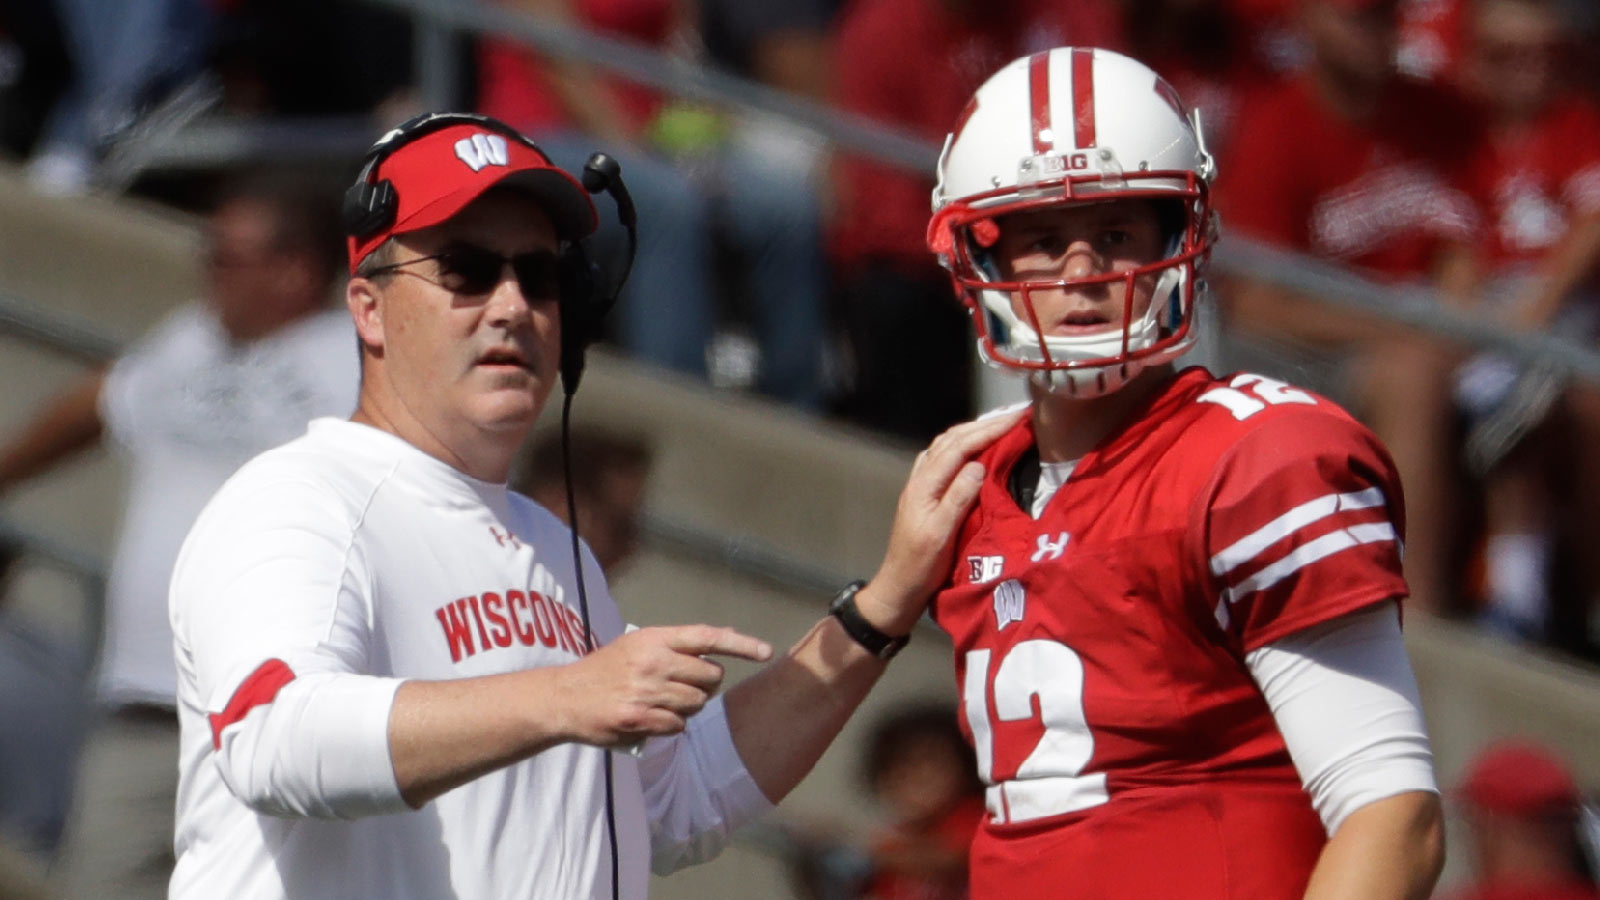 Secret's out: RS freshman Hornibrook to start at QB for Badgers